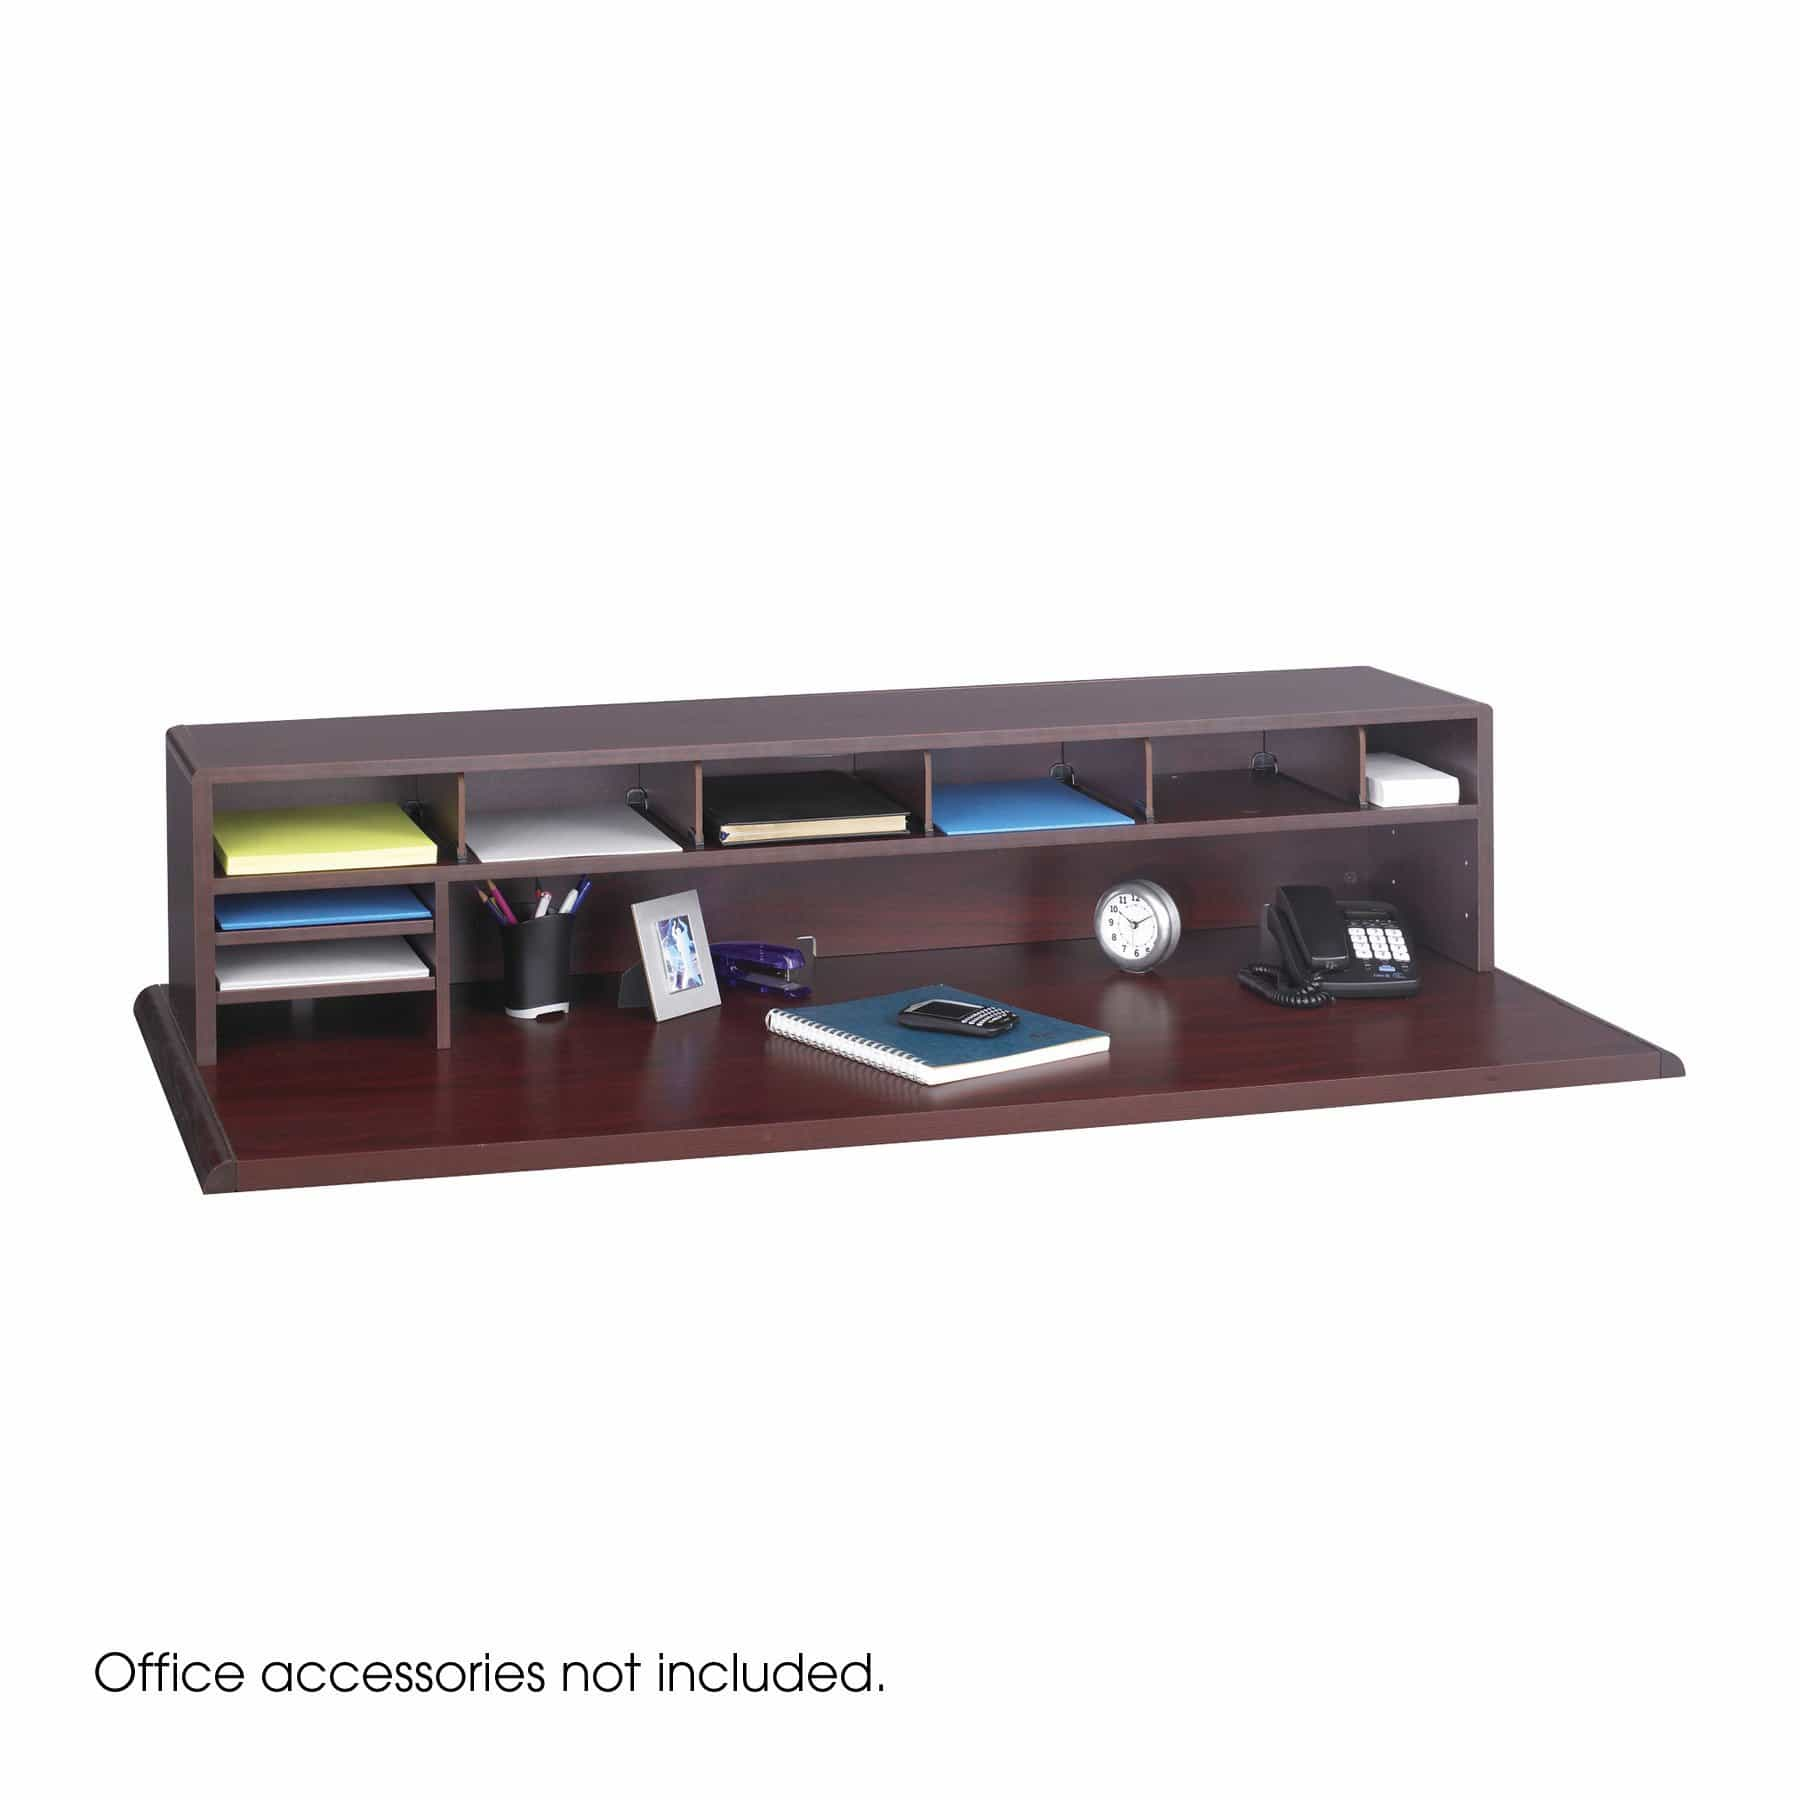 bedinhome - 3671MH 58 Inch W Mahogany Low Profile adjustable shelves & dividers Desk Top Organizer - Safco - Wood Desktop Organizers